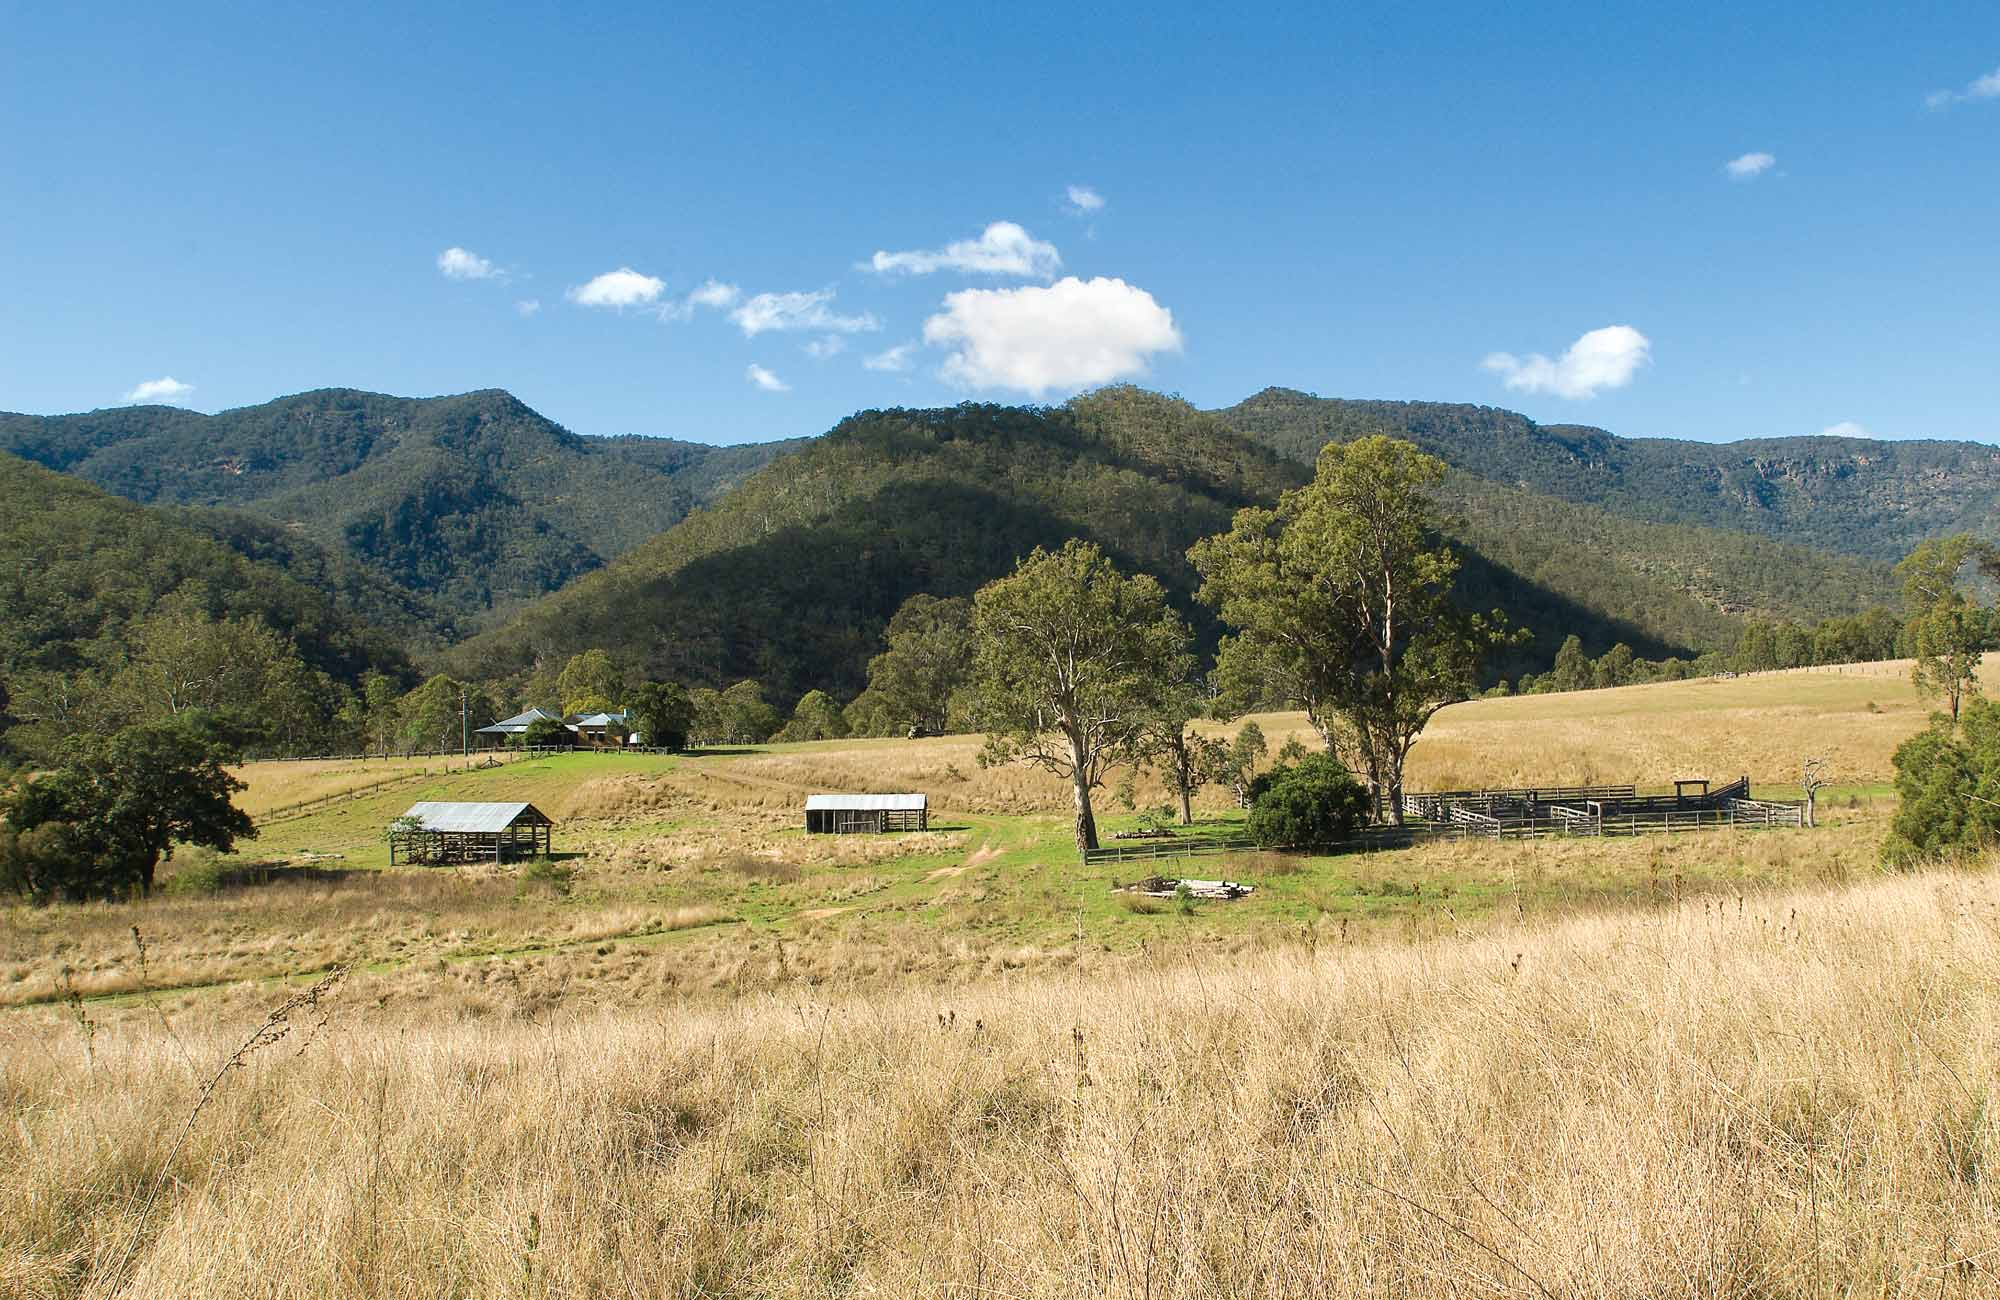 East Kunderang Homestead, Oxley Wild Rivers National Park. Photo: Michael Van Ewijk